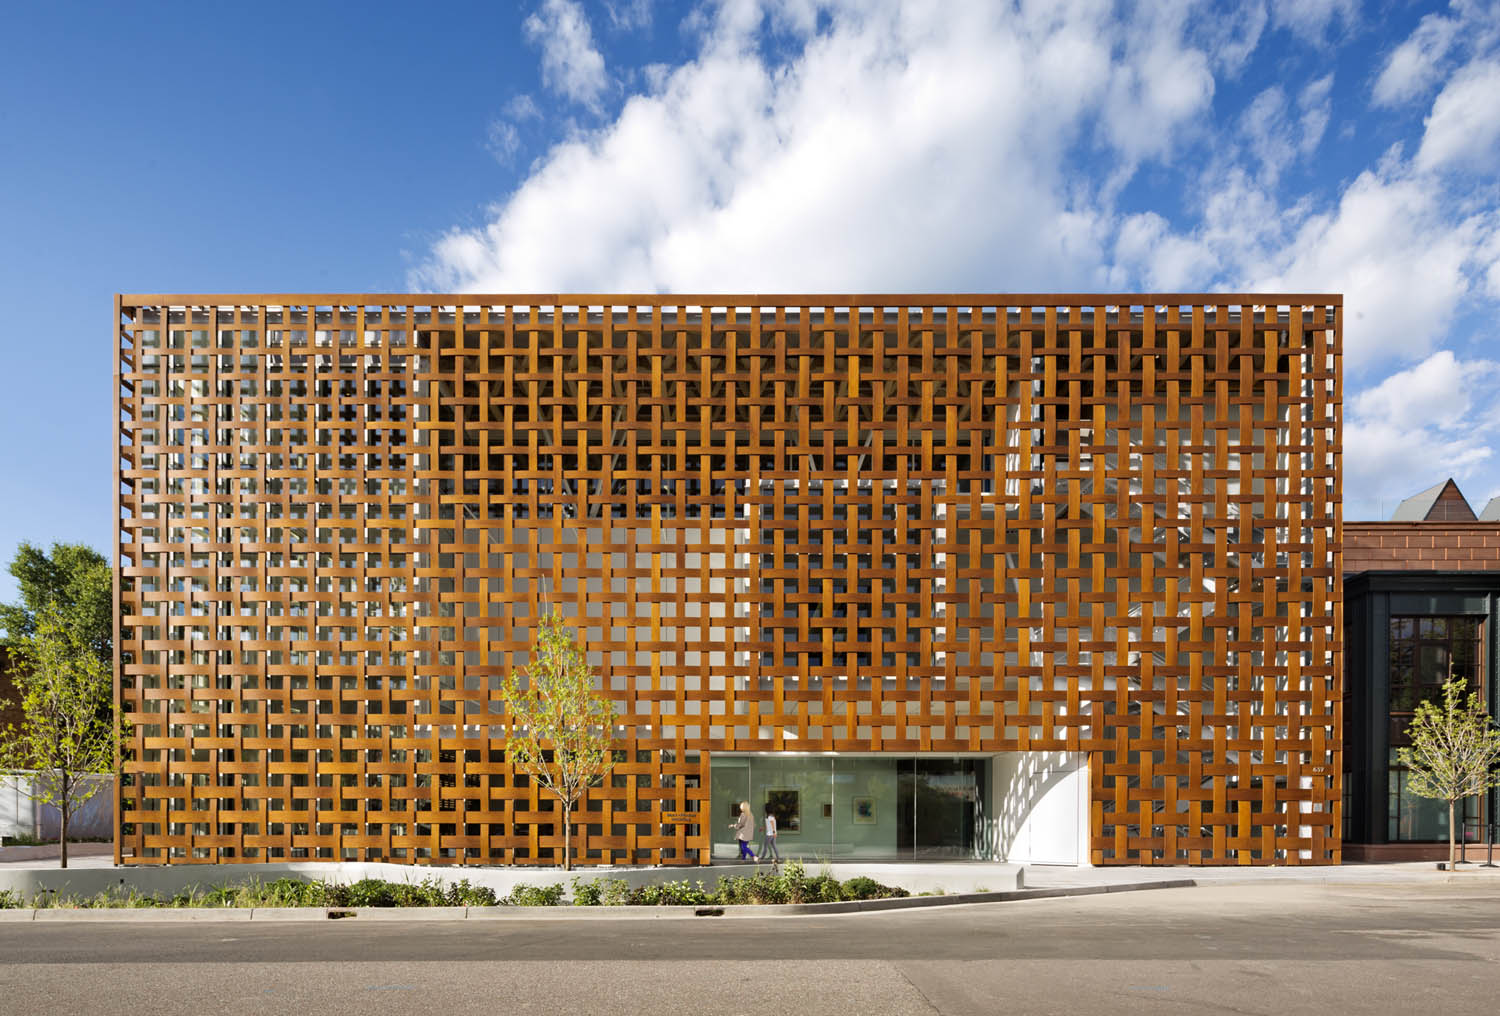 mm_Aspen Art Museum design by Shigeru Ban Architects_02